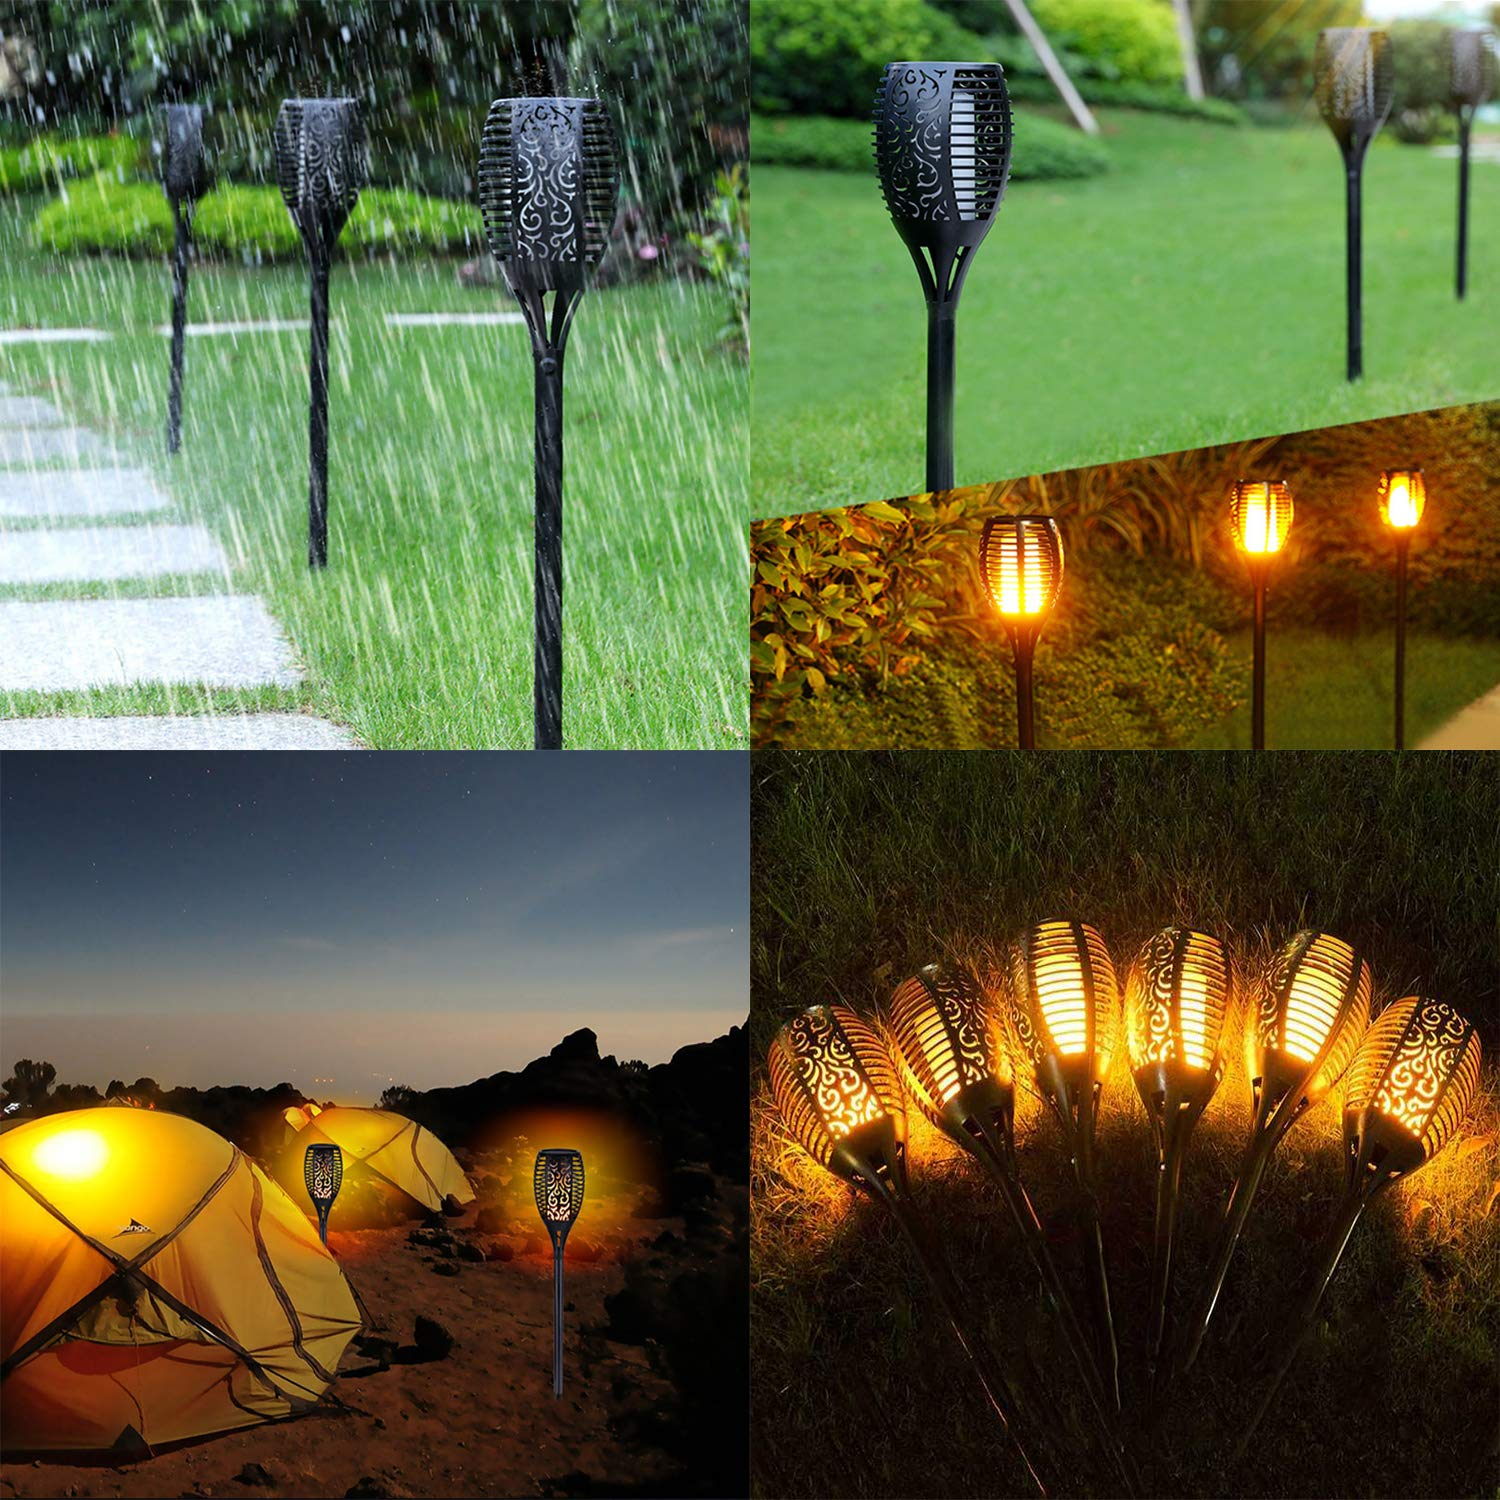 Xtozon Solar Torch Lights Upgraded, Dancing Flames Torch Solar Lamp, 96 LED Flame Effect Saving Lamp, Waterproof Outdoor Pathway Decoration Solar Security Light Auto On/Off from Dusk to Dawn - 4 pack by Xtozon (Image #6)